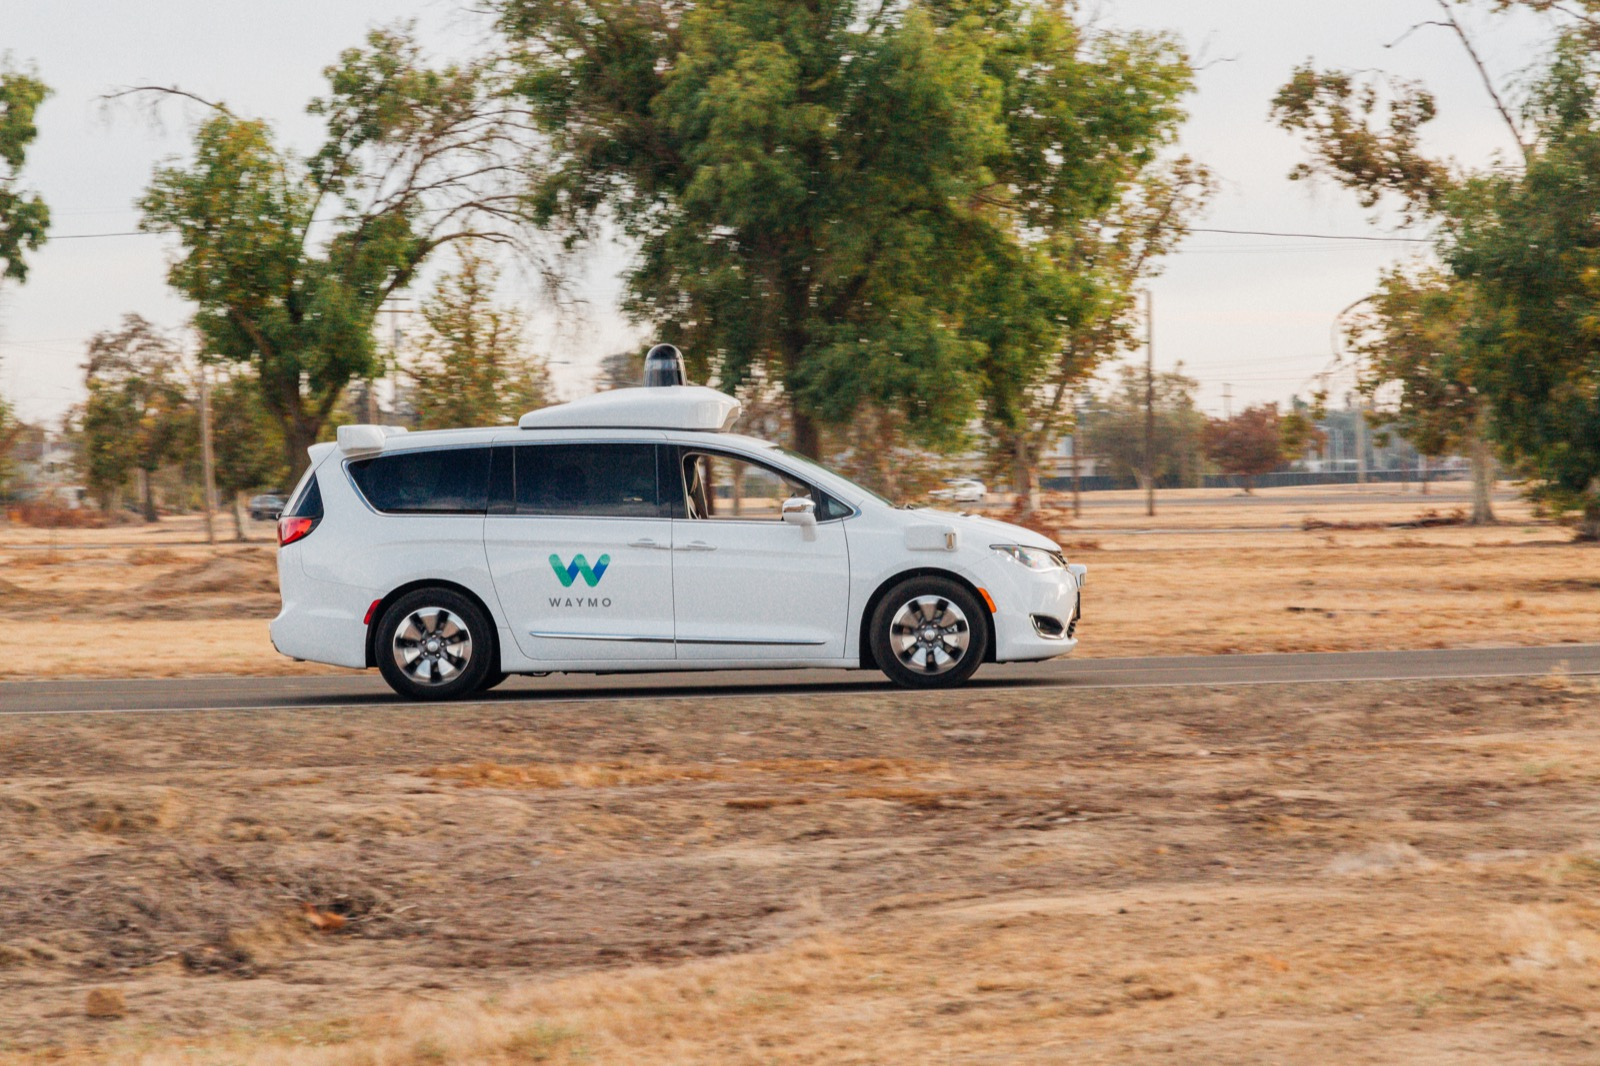 Waymo to Buy Up to 62000 Chrysler Minivans for Ride-Hailing Service